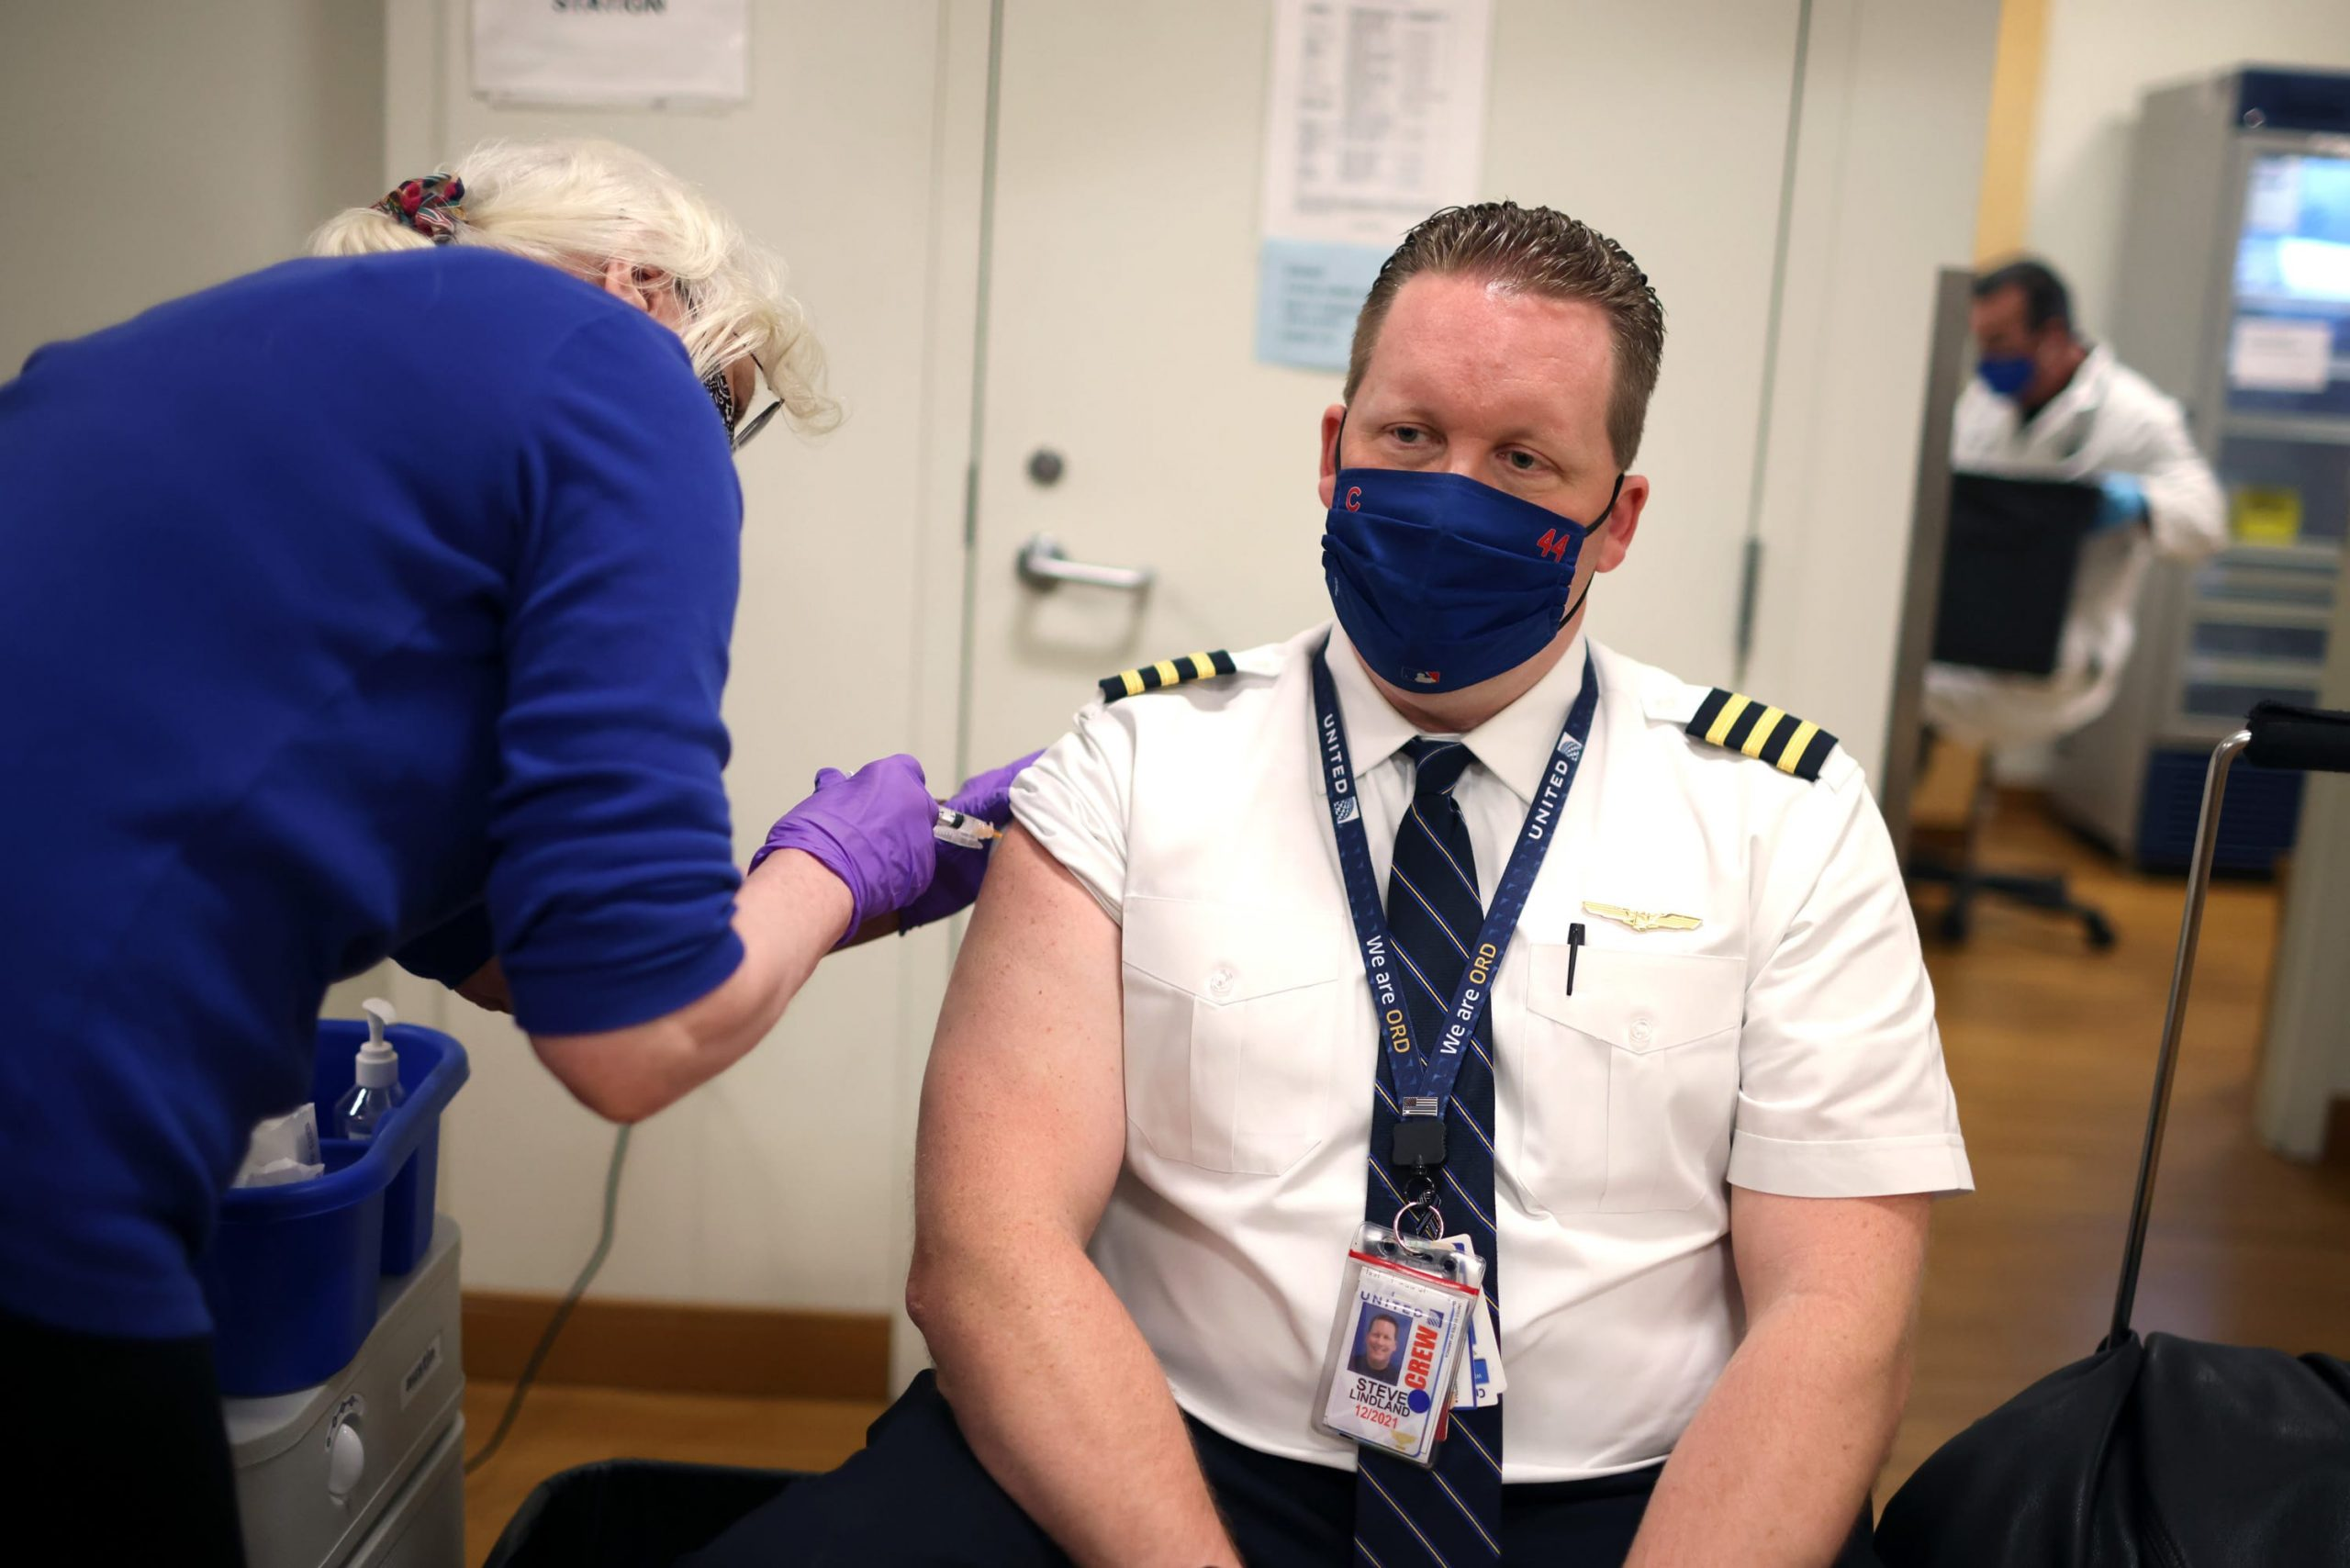 Unvaccinated United Airlines staff faces termination as early as today